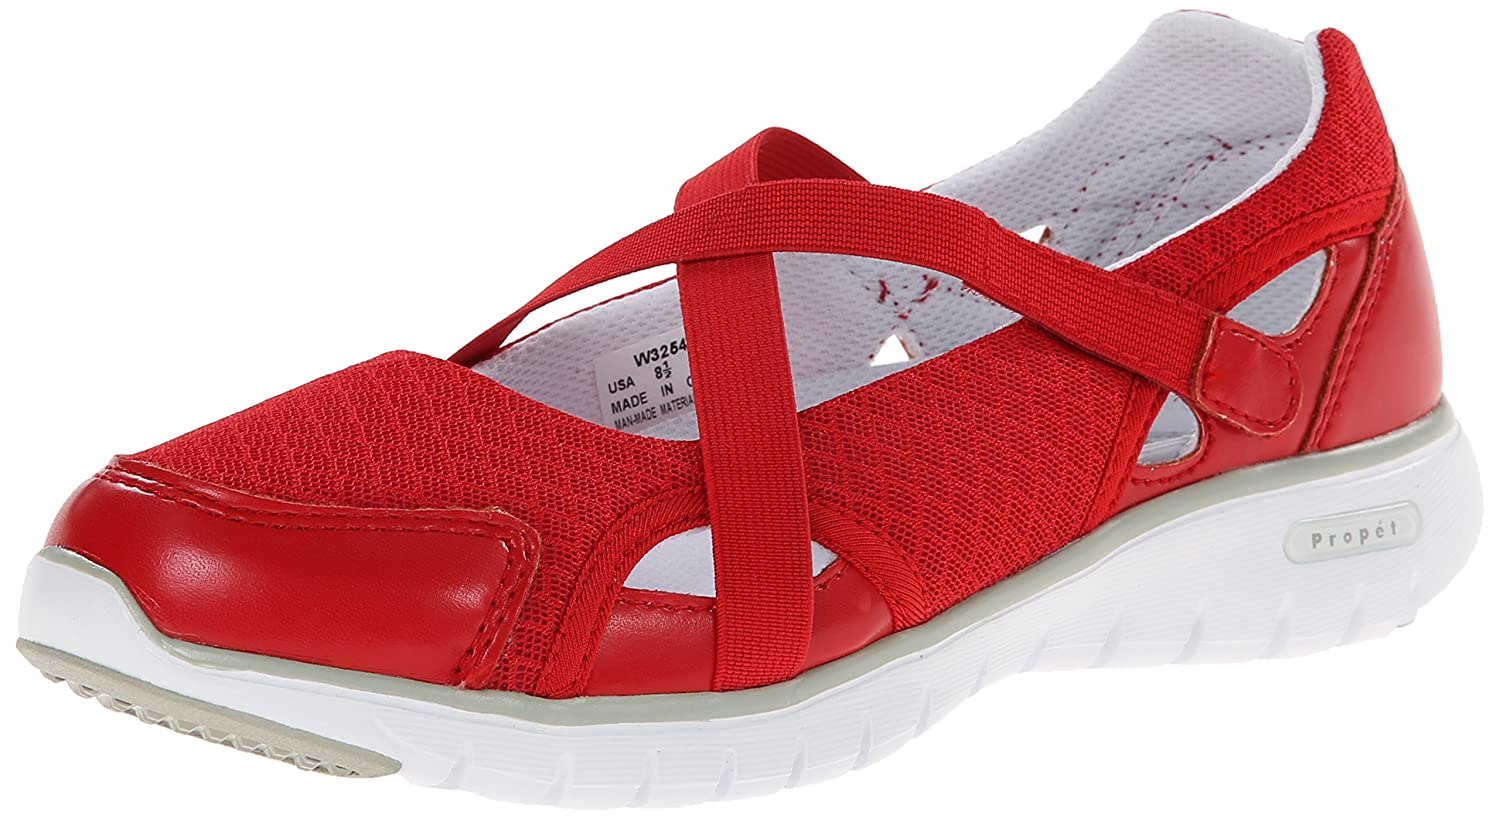 Propet Women's Travellite MJ Walking Shoe B00MUB8Q1M 6.5 B(M) US|Red